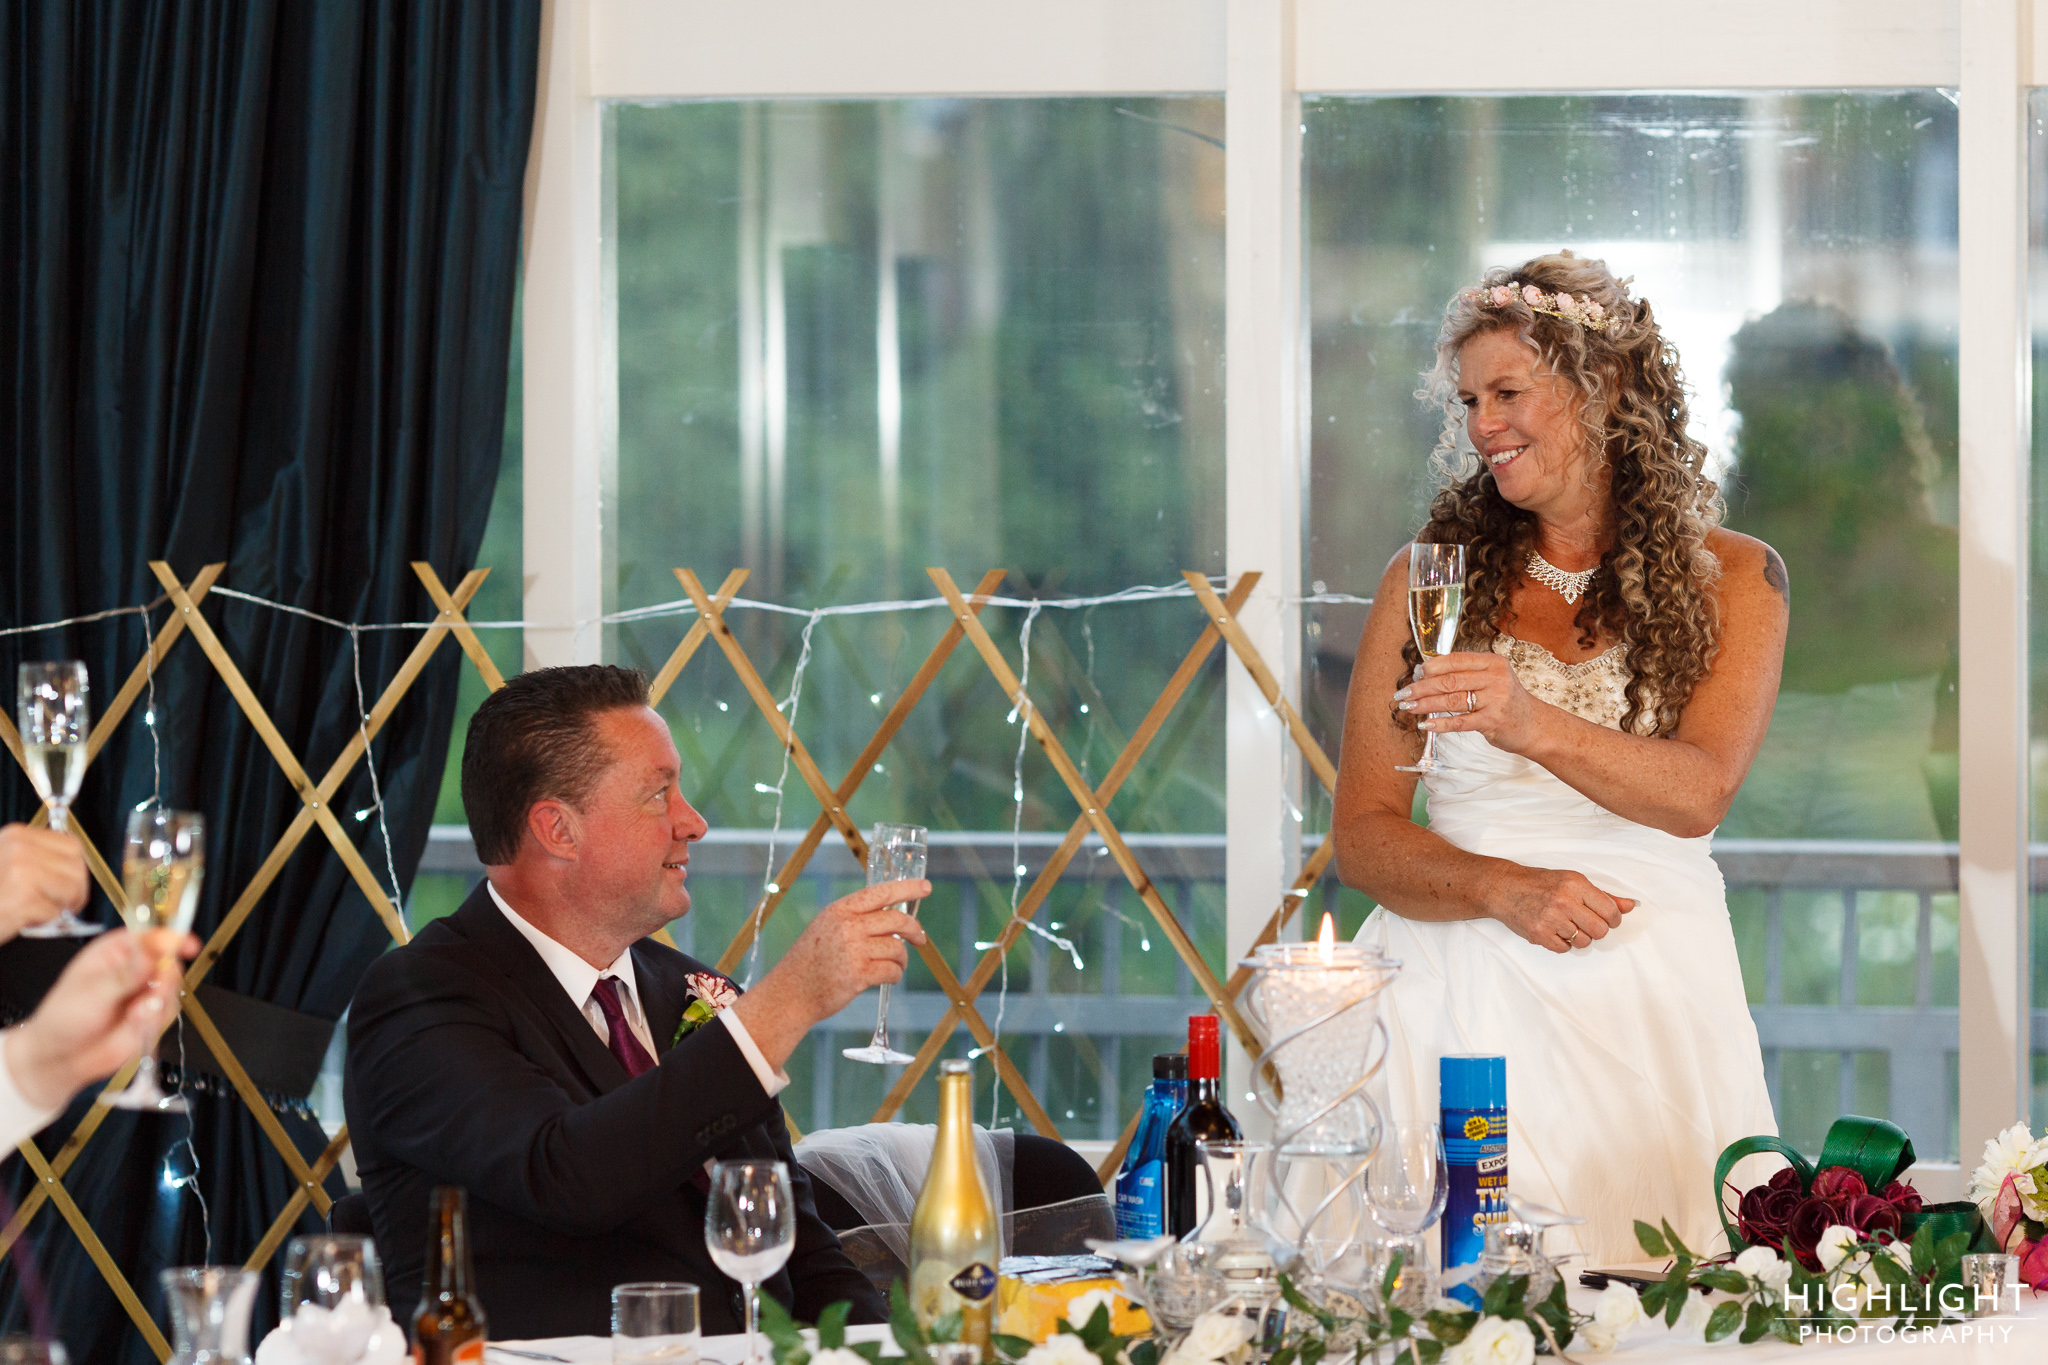 highlight_wedding_photography_palmerston_north_manawatu_chalet_wedding-111.jpg